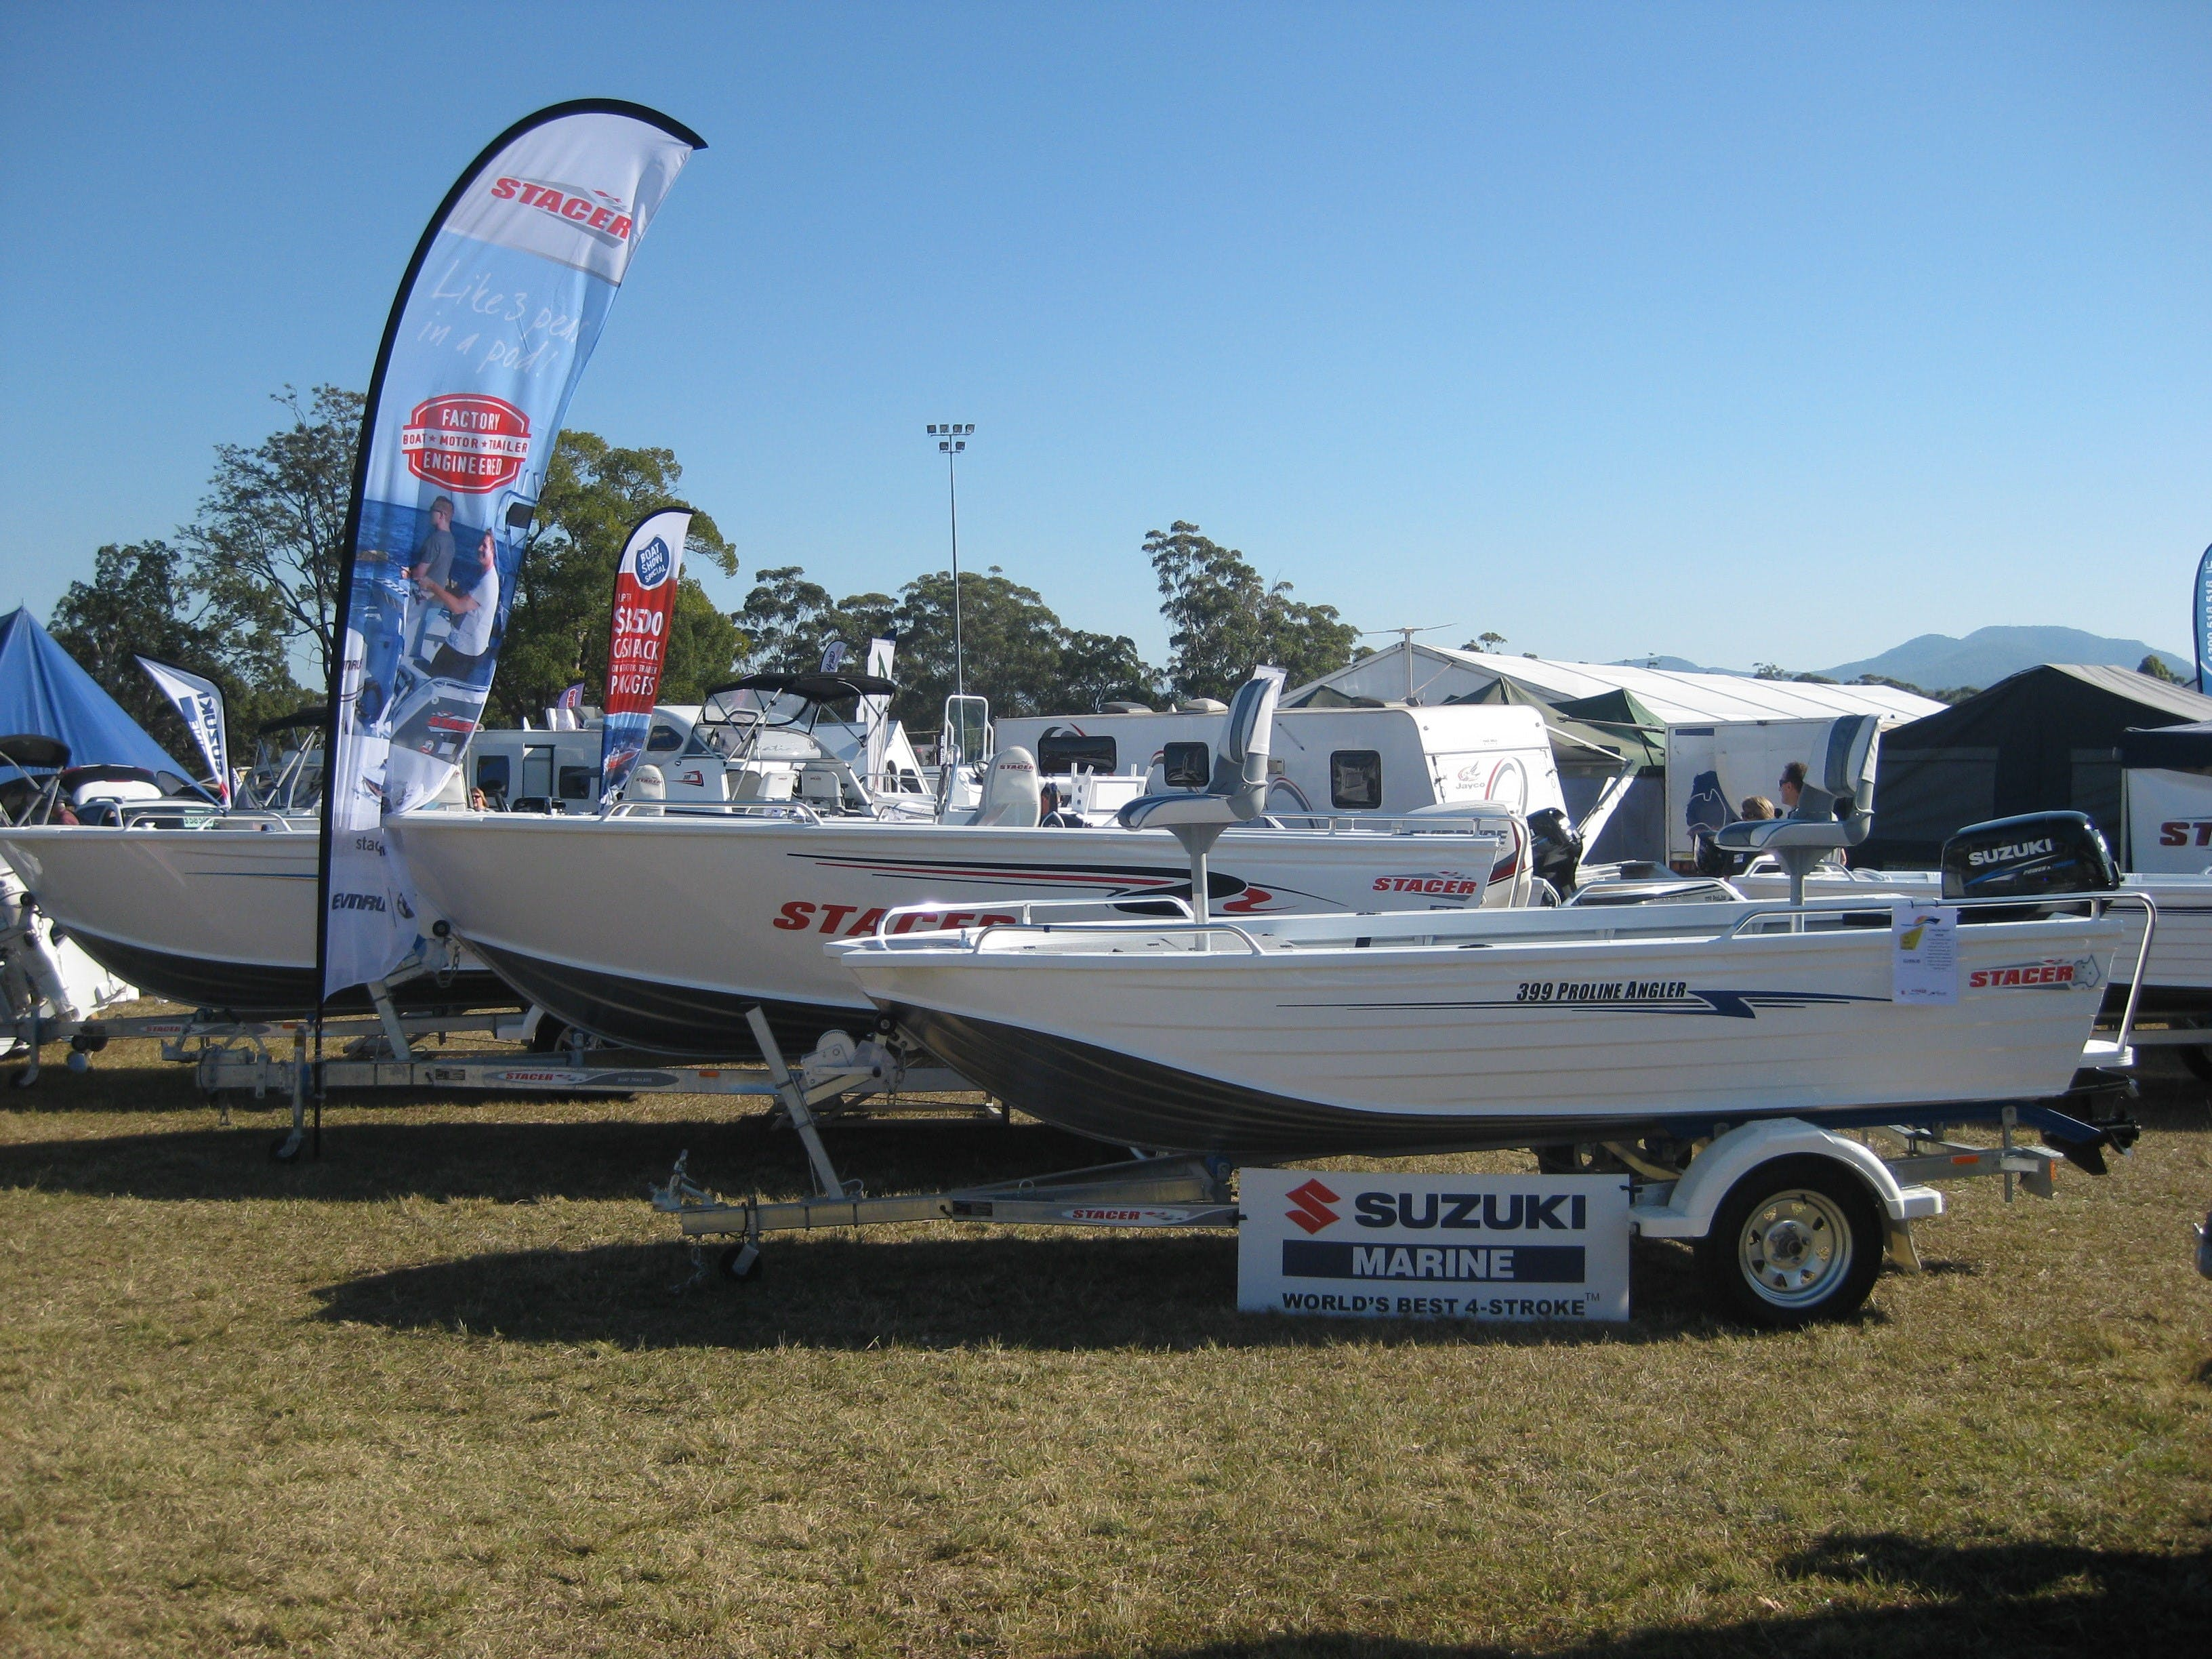 Mid North Coast Caravan Camping 4WD Fish and Boat Show - Pubs and Clubs